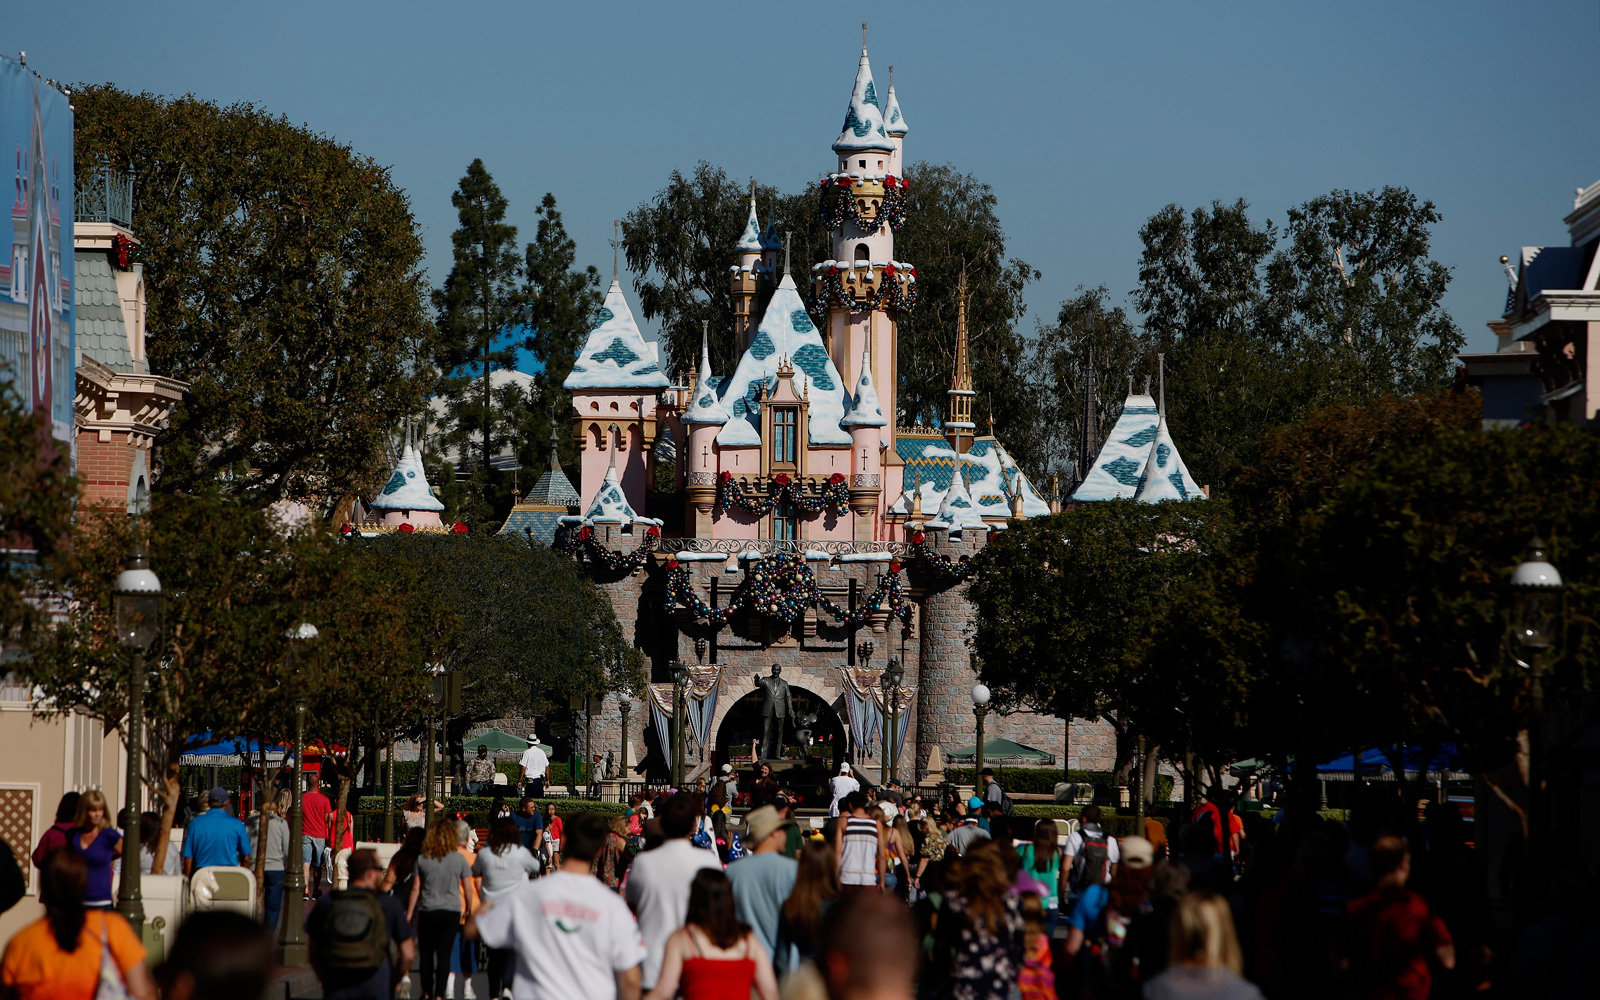 Power outage disrupts Disneyland; guests taken off rides